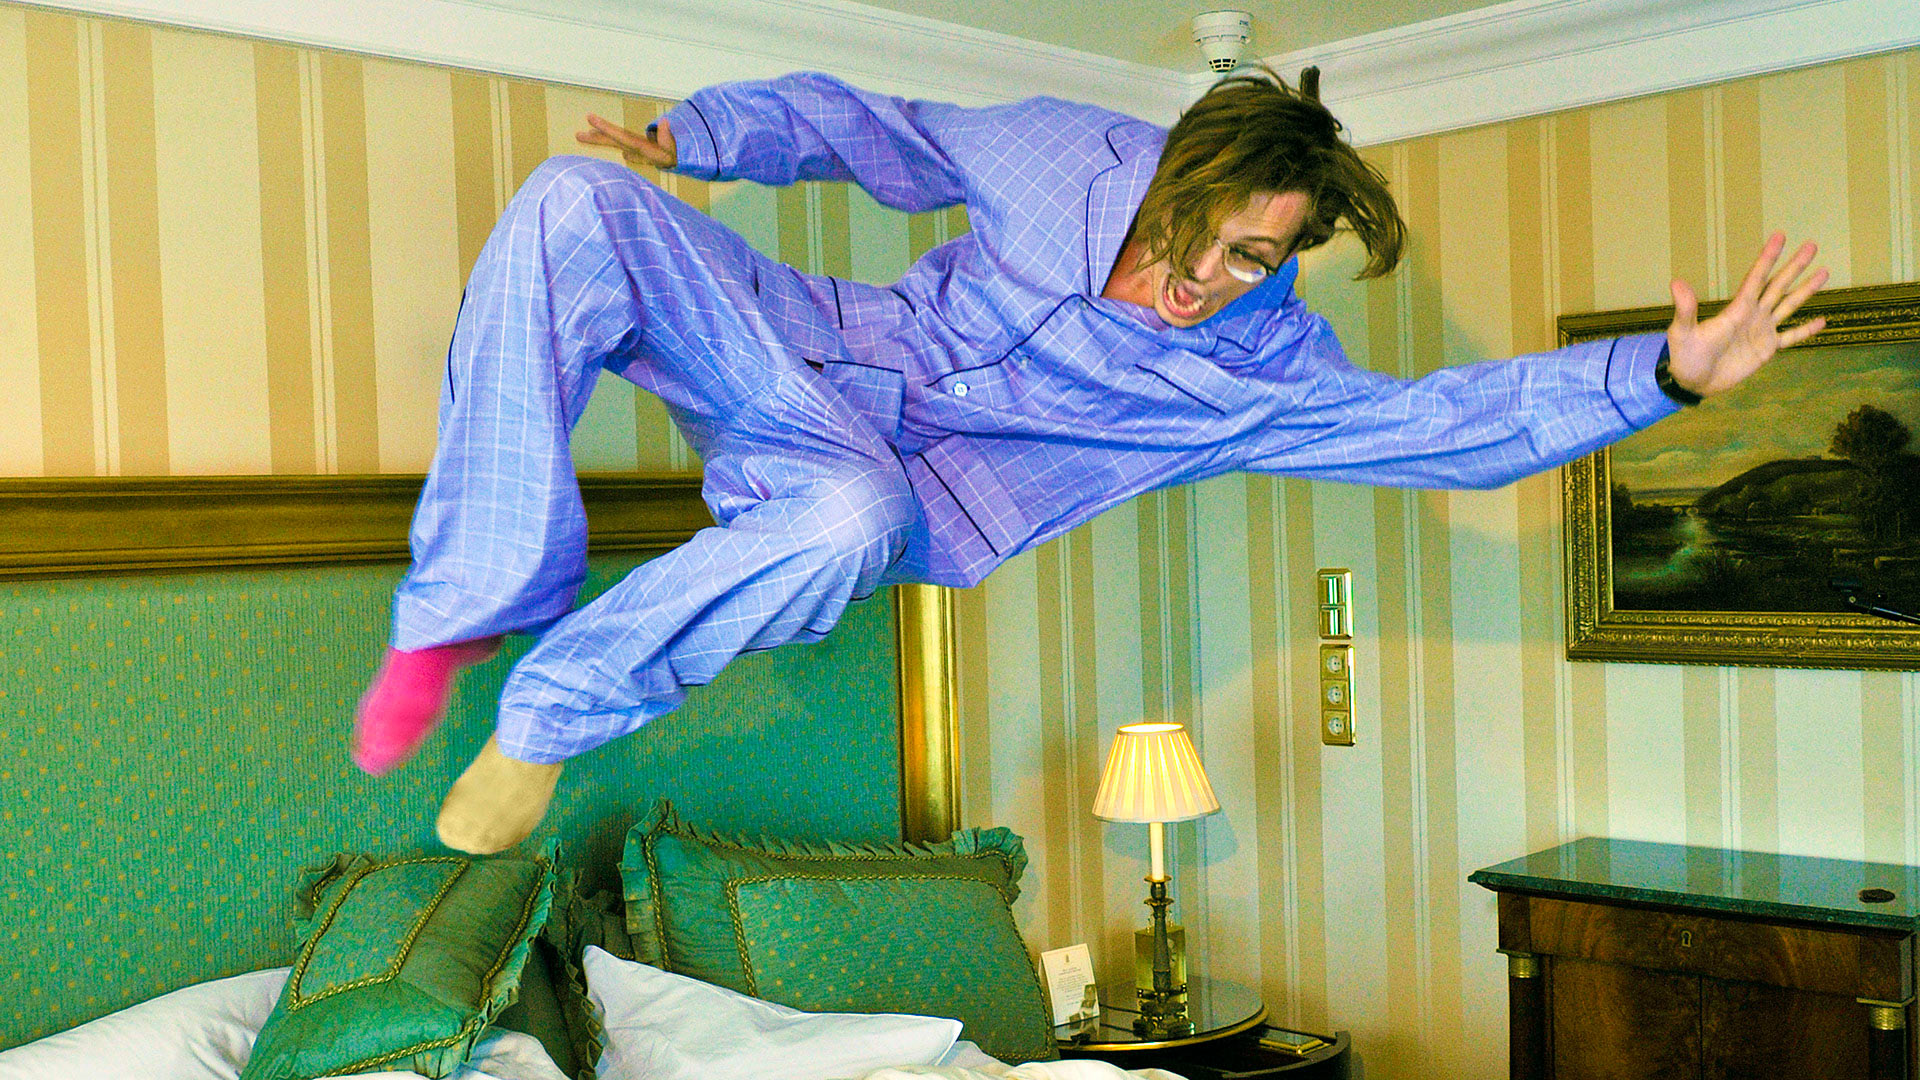 Matthew Gray Gubler, especially when he jumps on beds and wears mismatched socks